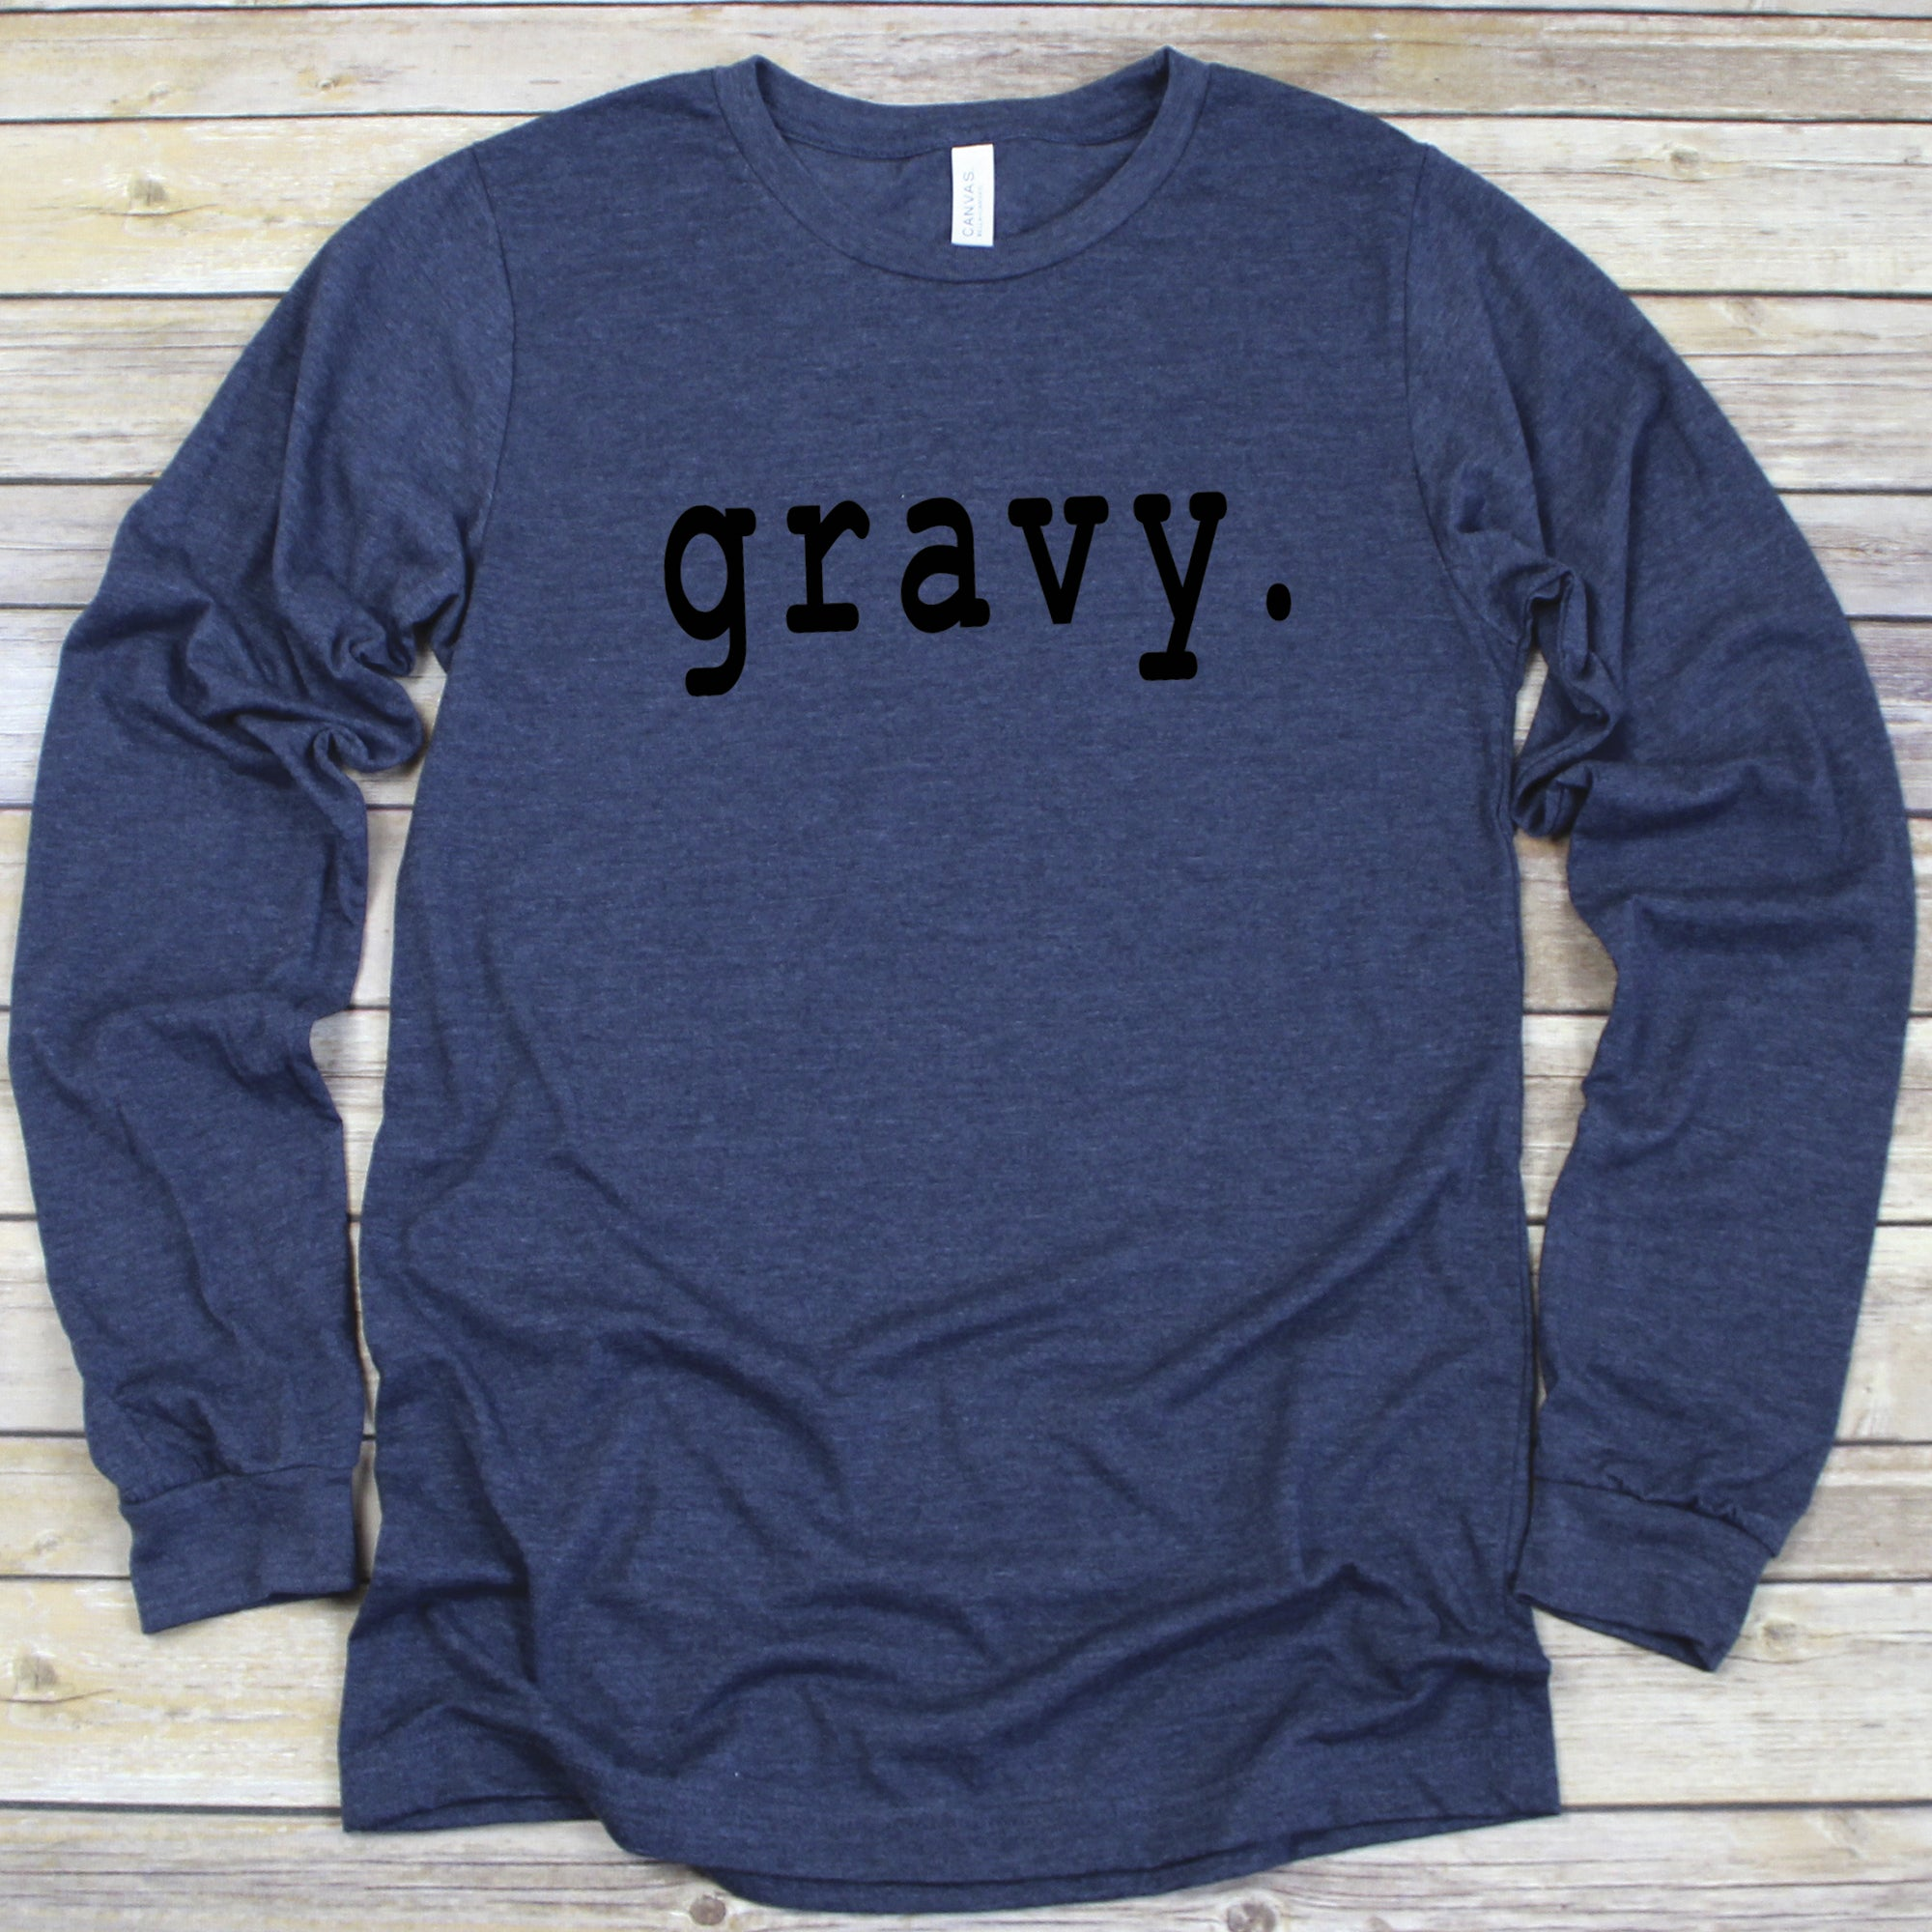 Gravy - Long Sleeve